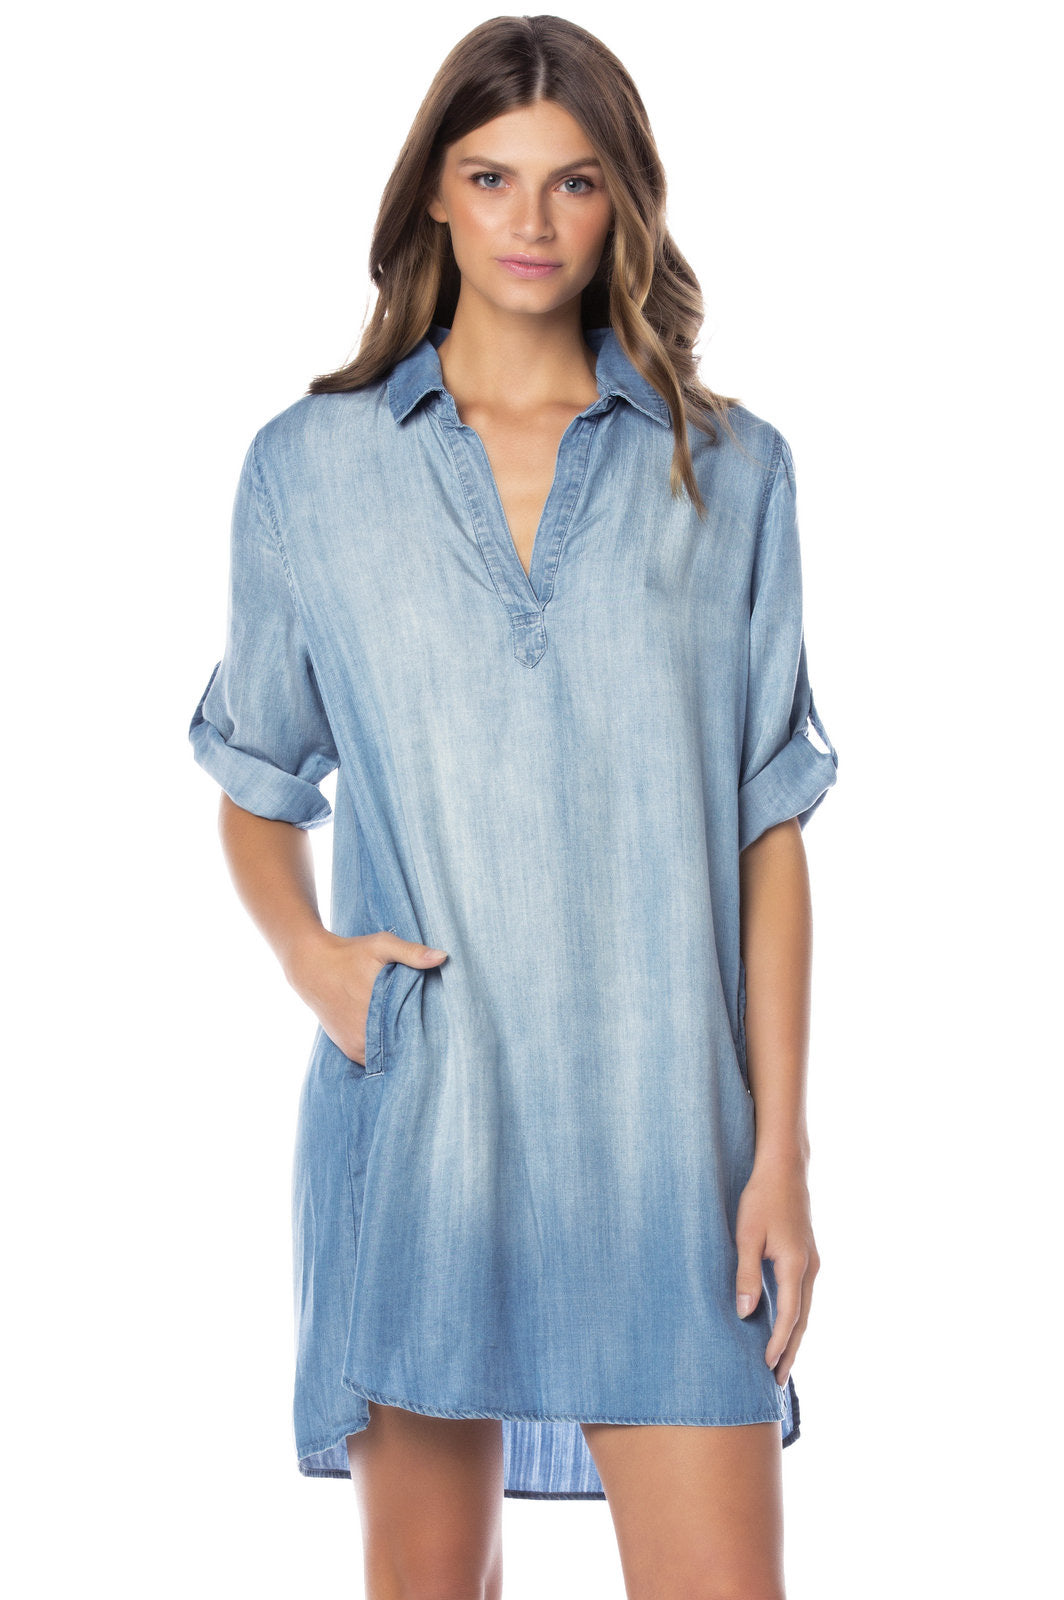 Long Sleeve Collared V Neck Denim Dress